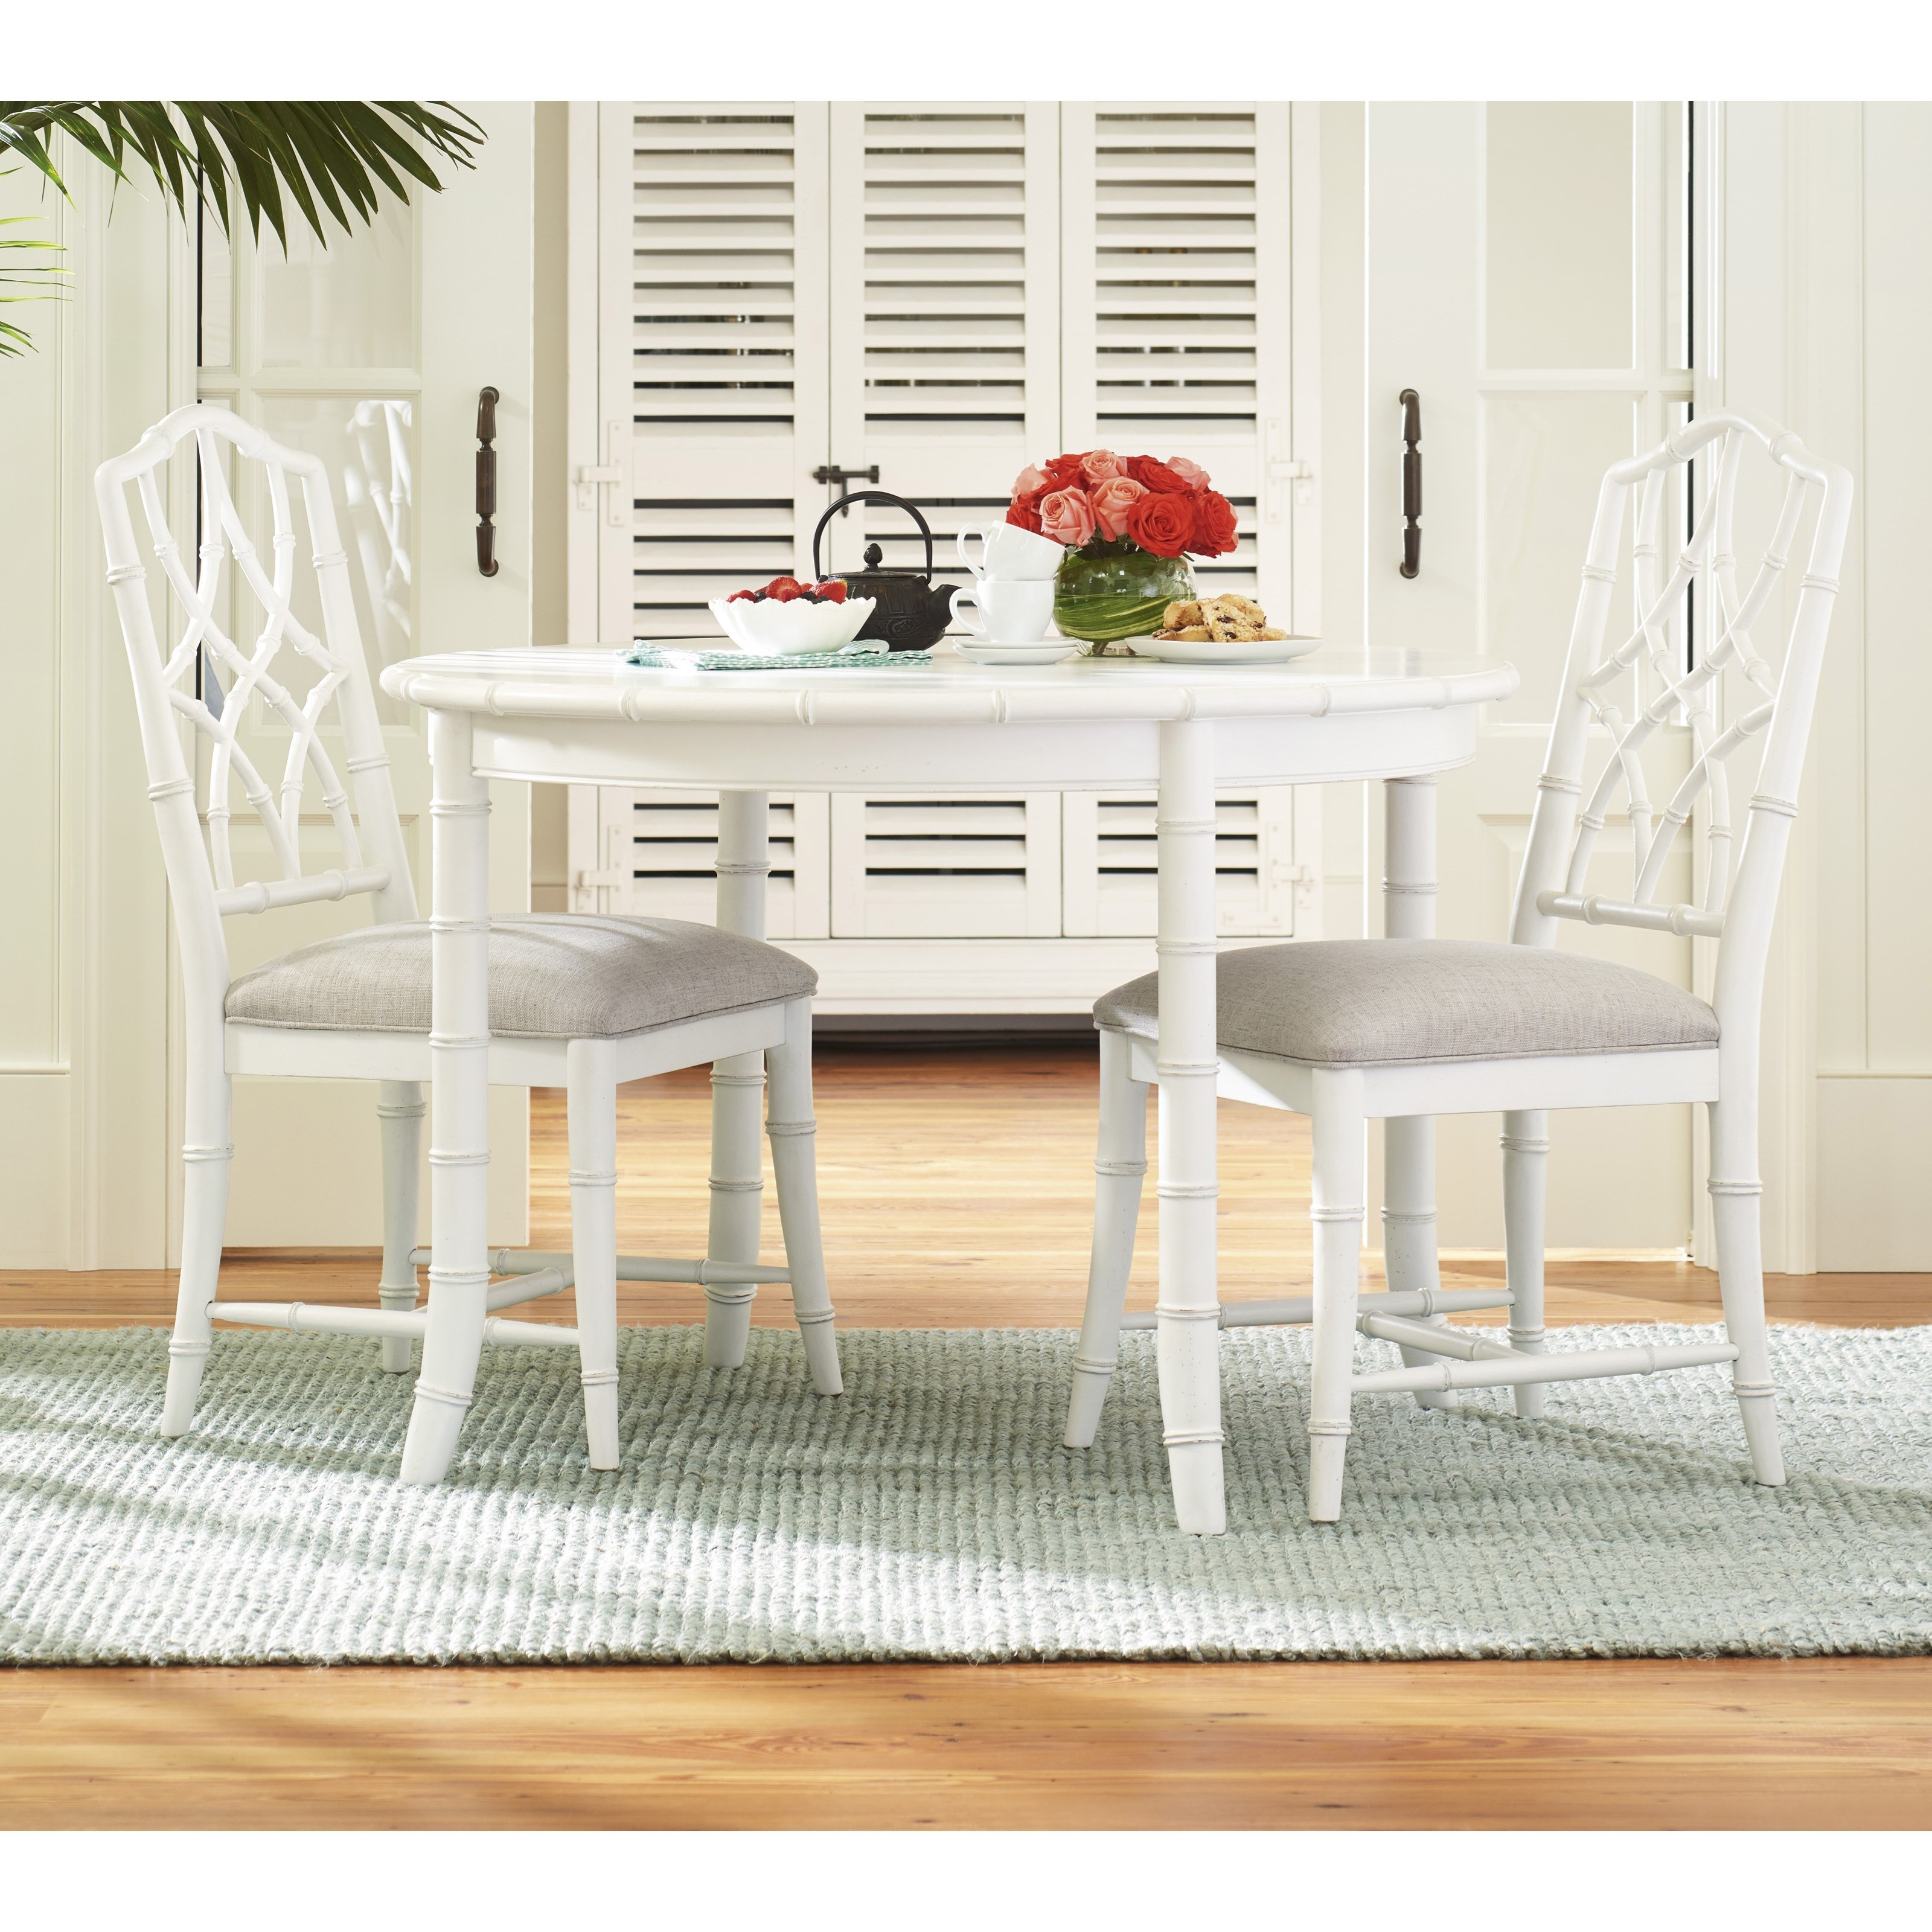 Paula Deen by Universal Bungalow Three Piece Dining Set - Item Number: 795A650+2x624-RTA